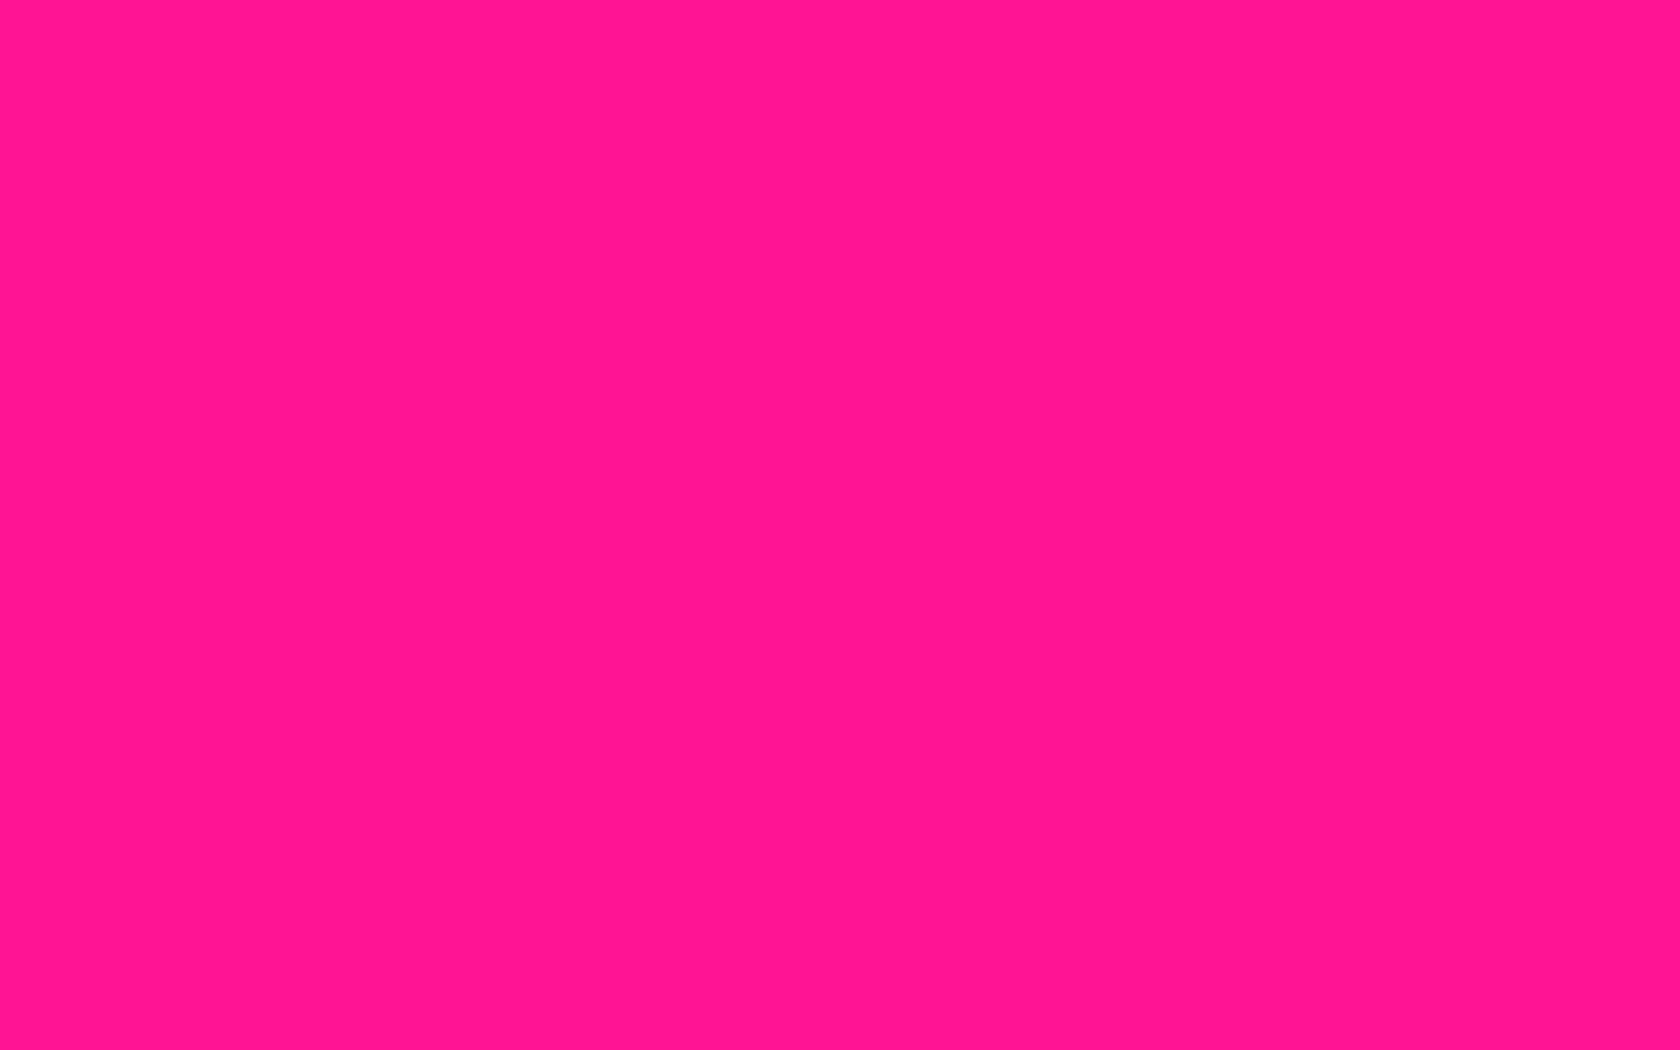 1680x1050 Deep Pink Solid Color Background